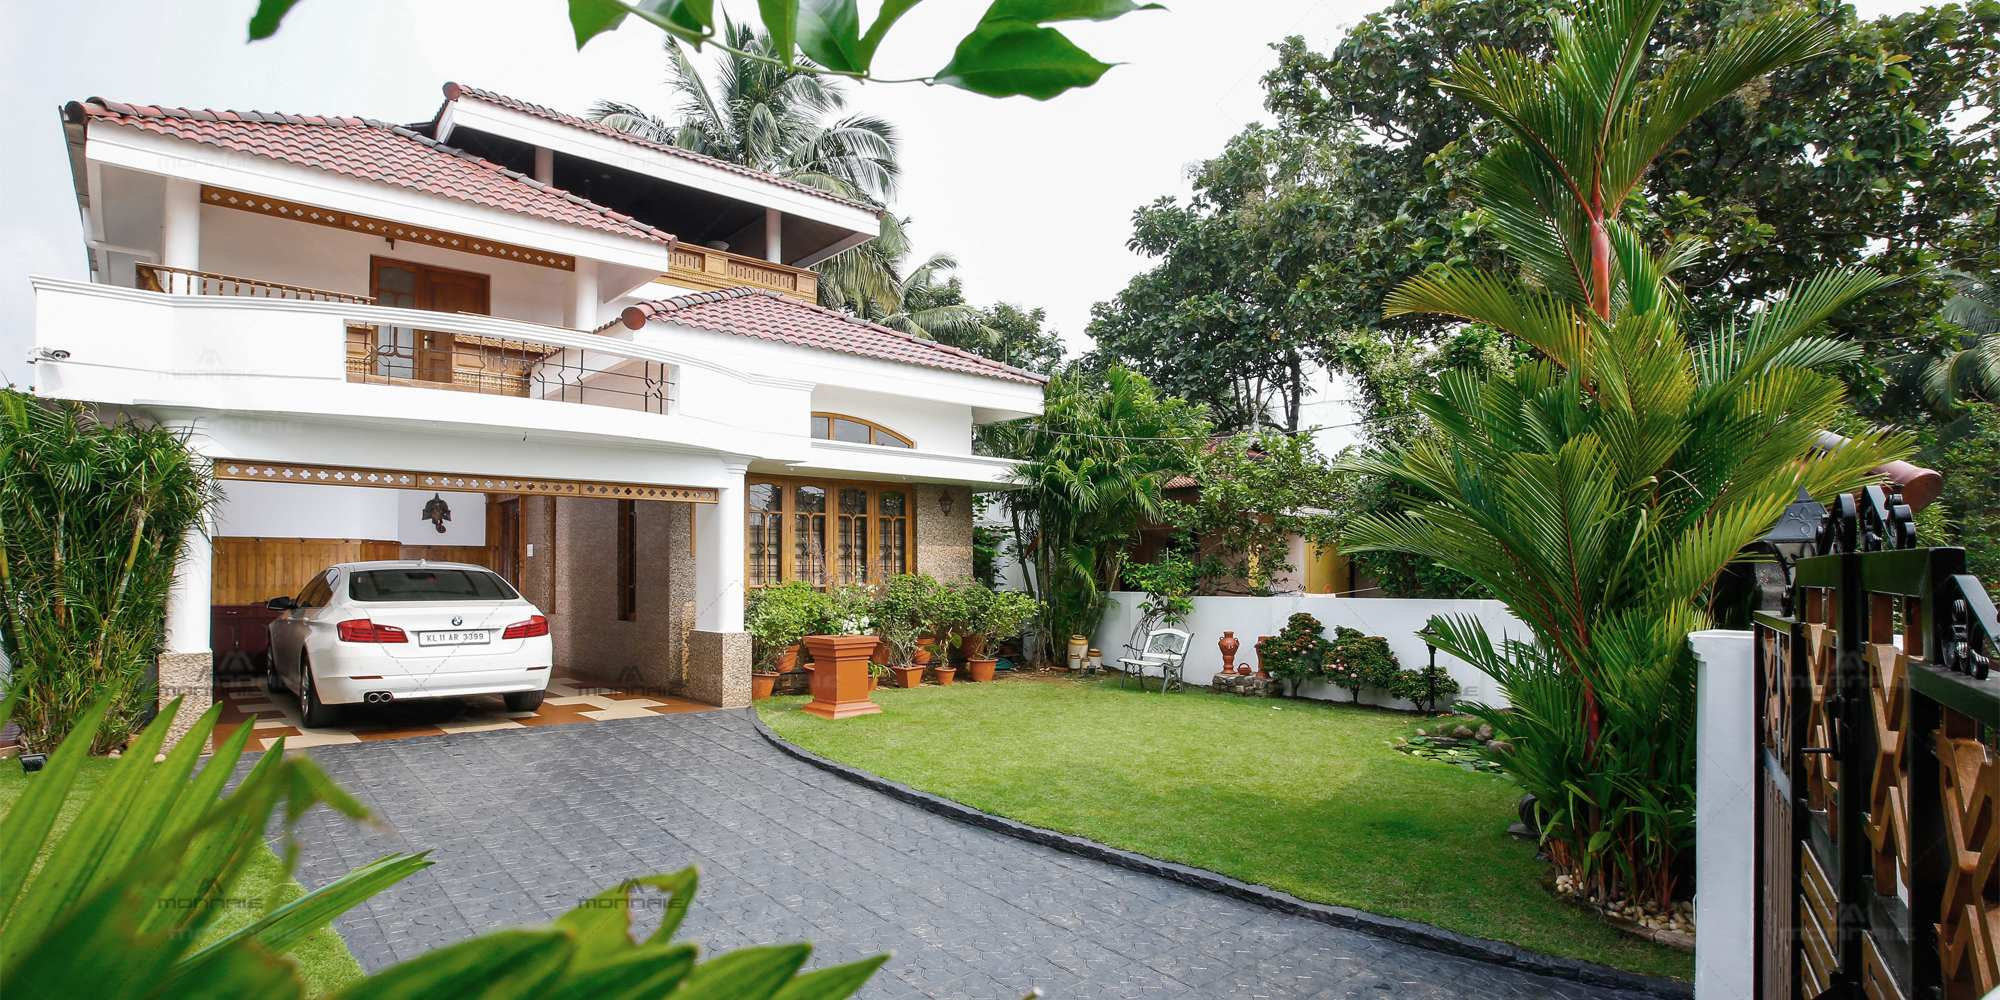 Architects in palakkad